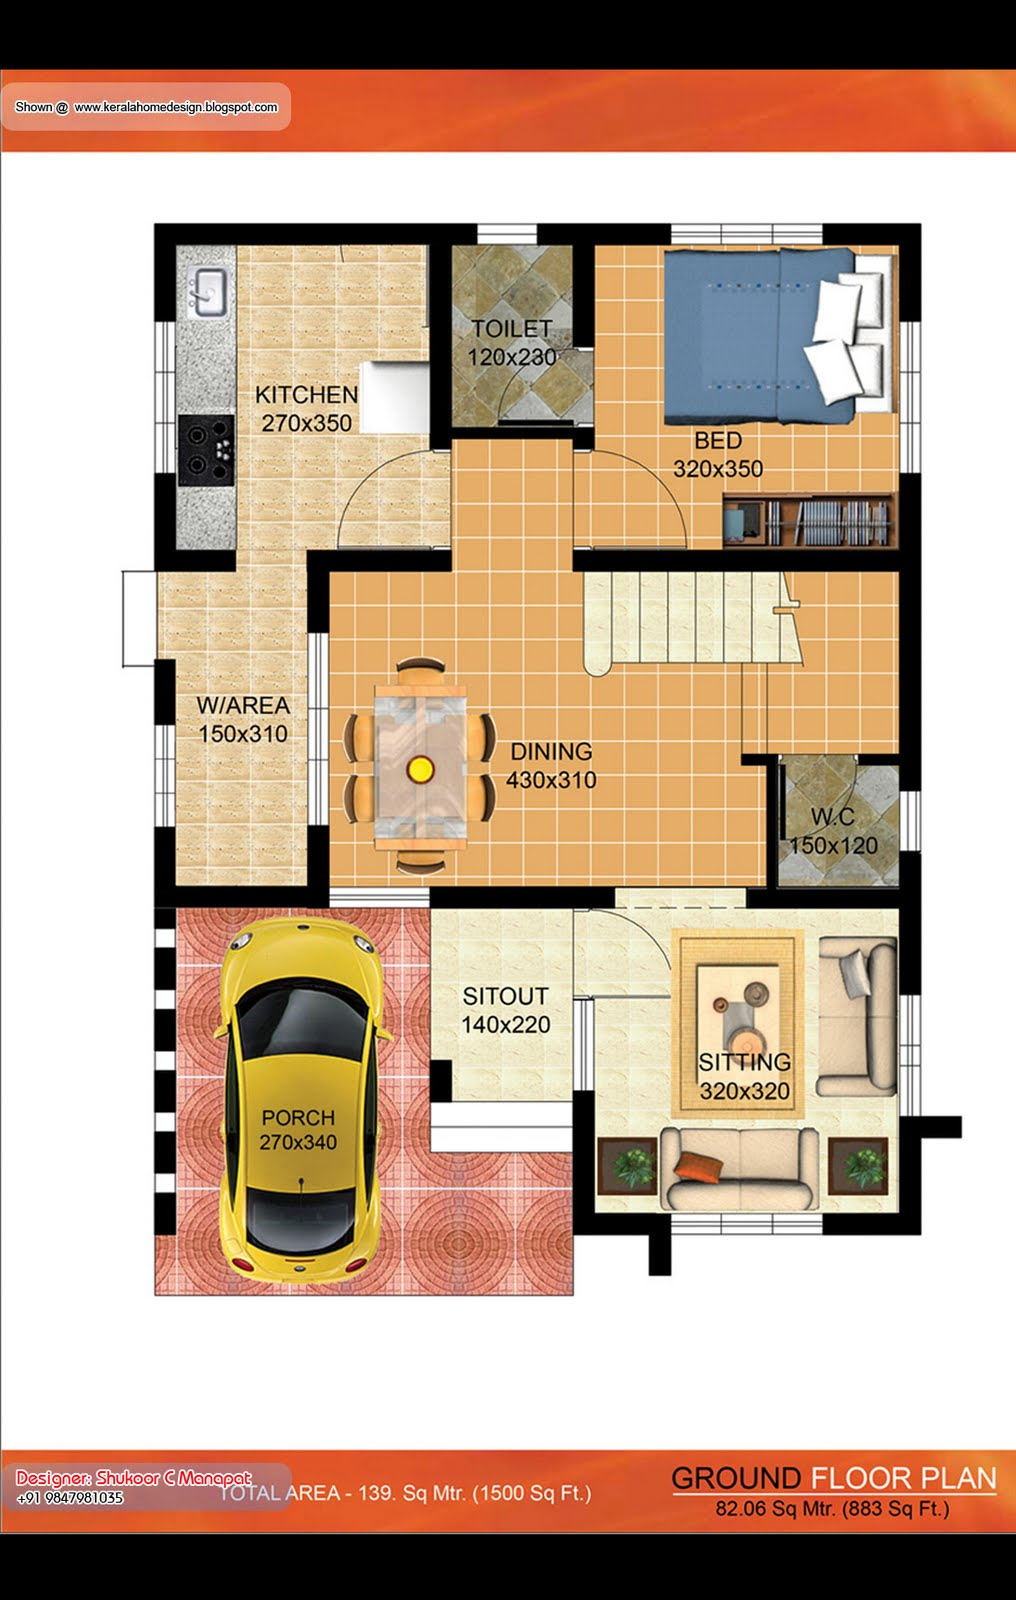 Kerala villa plan 1500 sq ft architecture house plans for House plans with photos 1500 sq ft